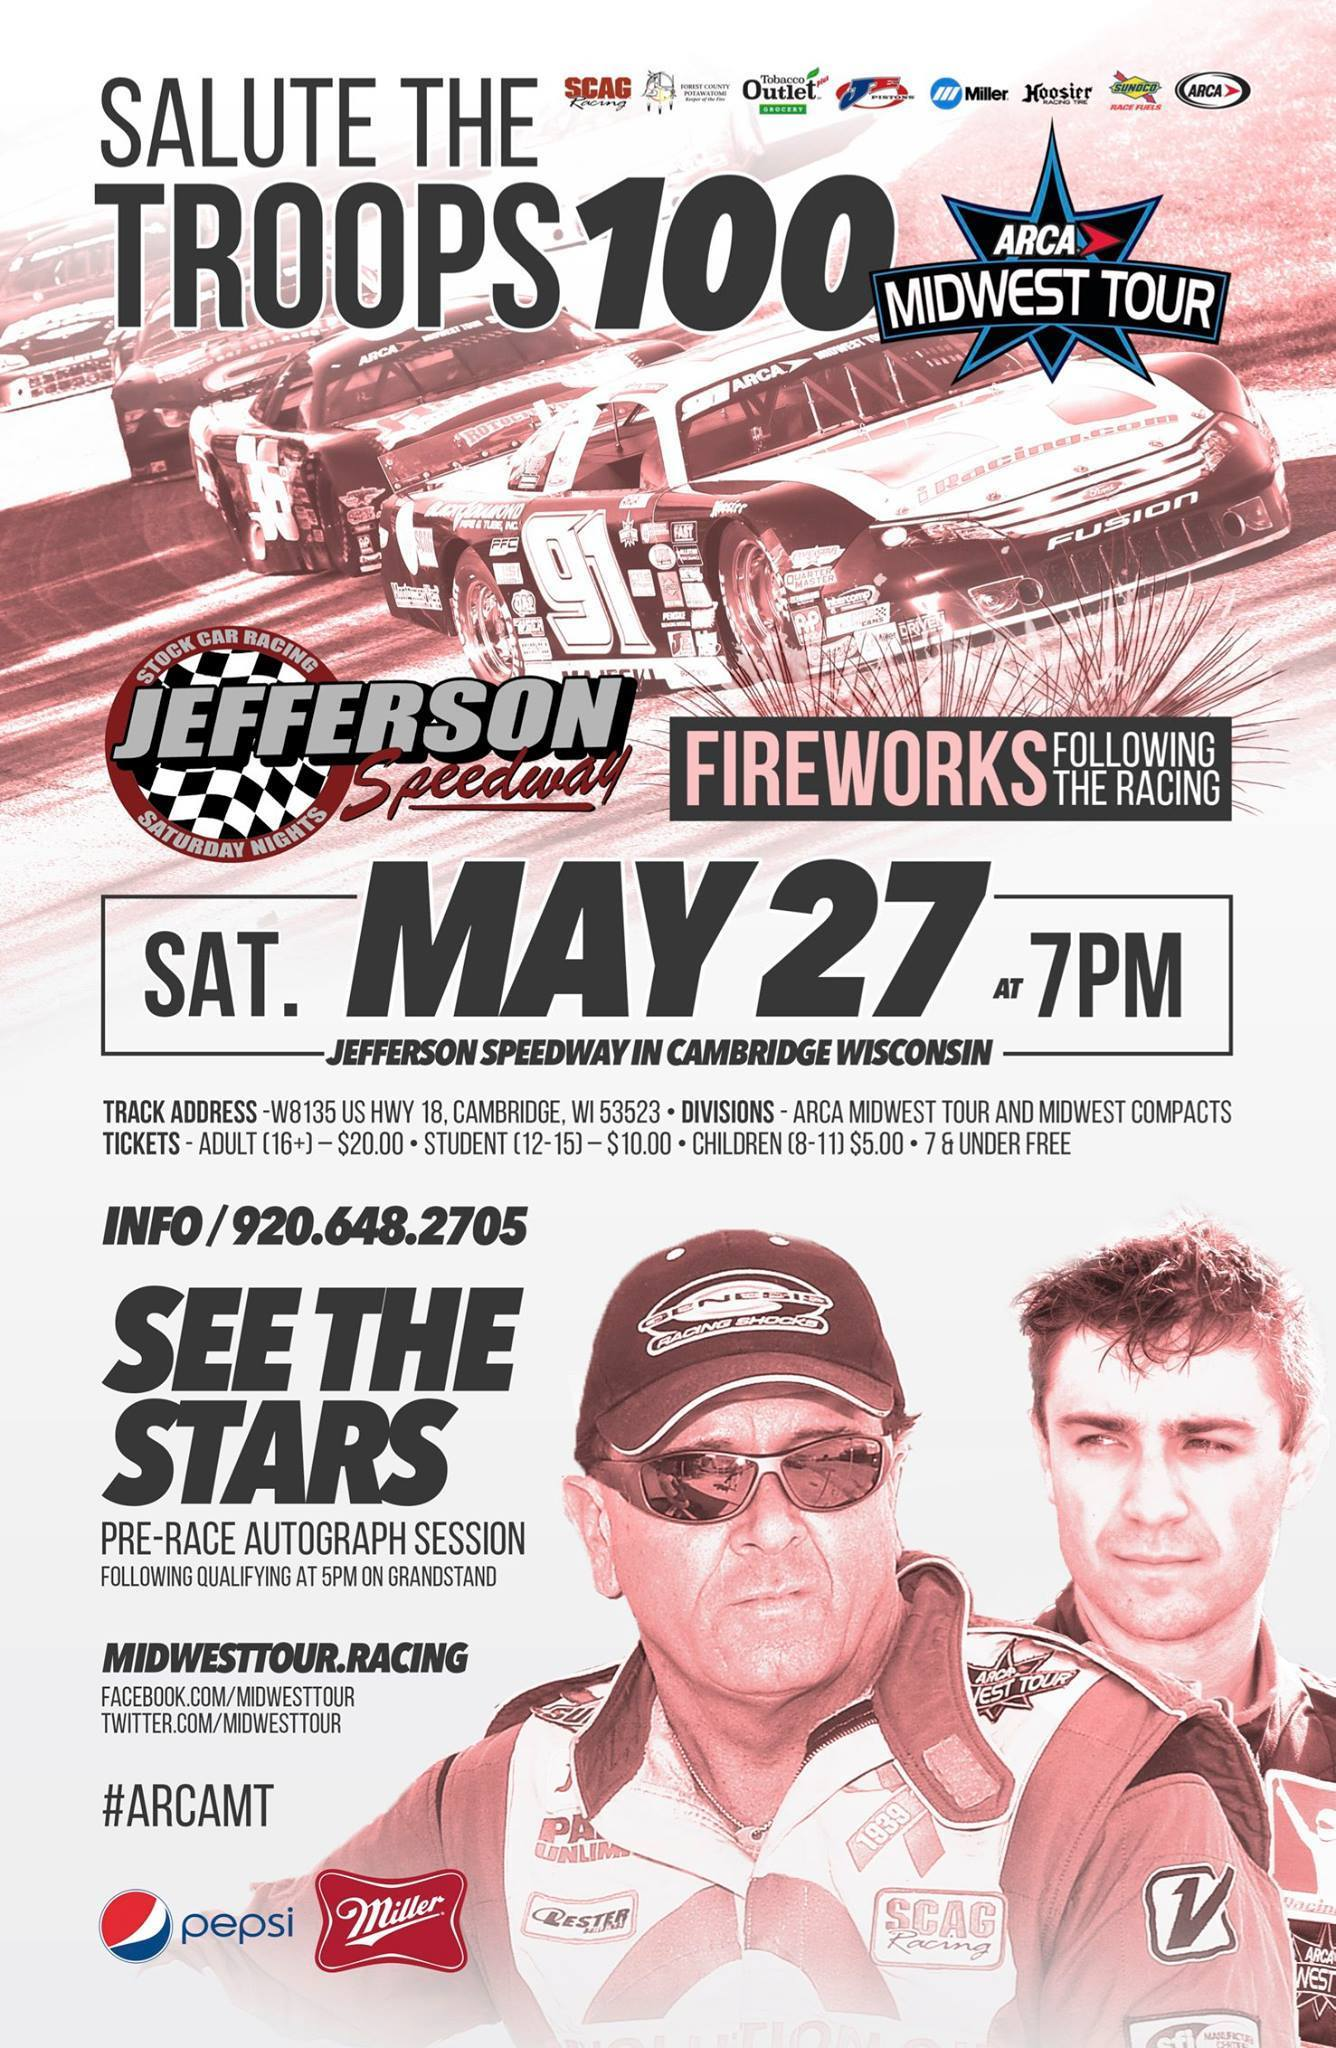 ARCAMT Stars & Cars Prepare For A Return To Jefferson Speedway This Saturday Night